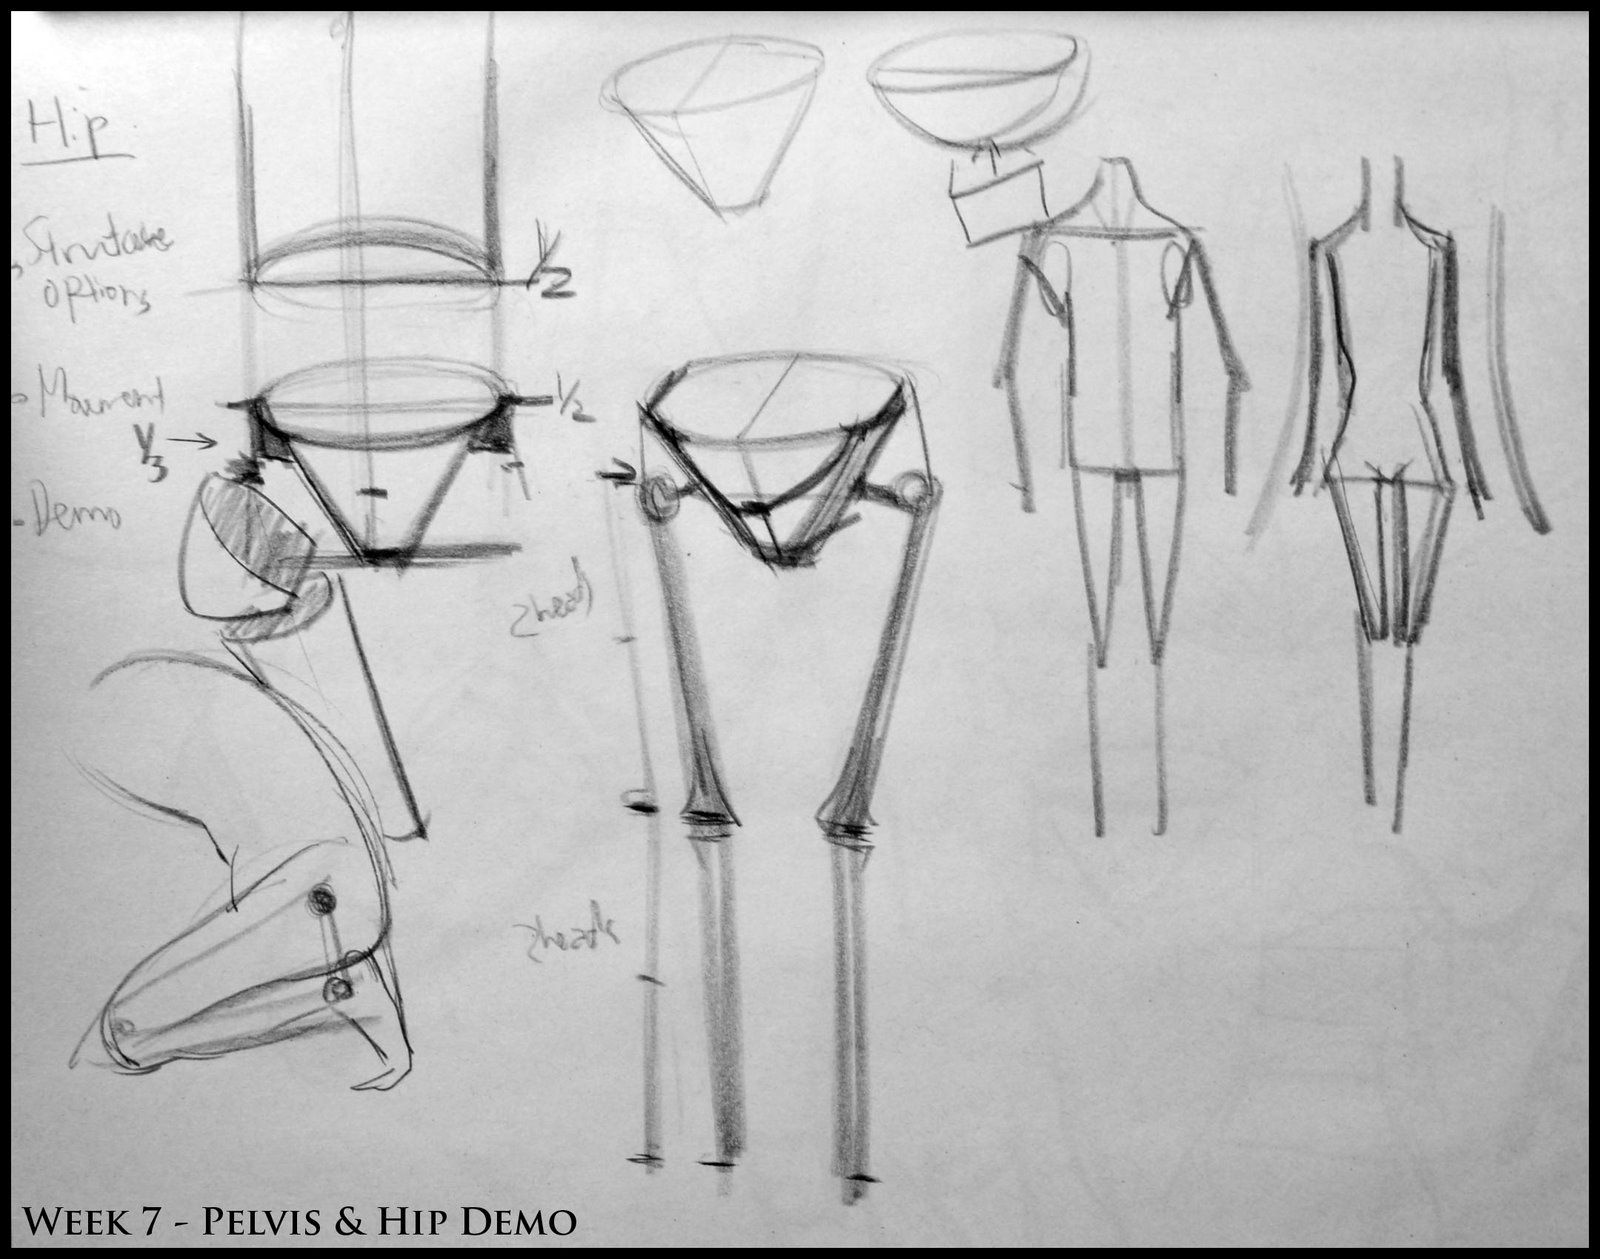 1000 images about anatomy analytical figure drawing sp08 week 7 pelvis hip structure demo